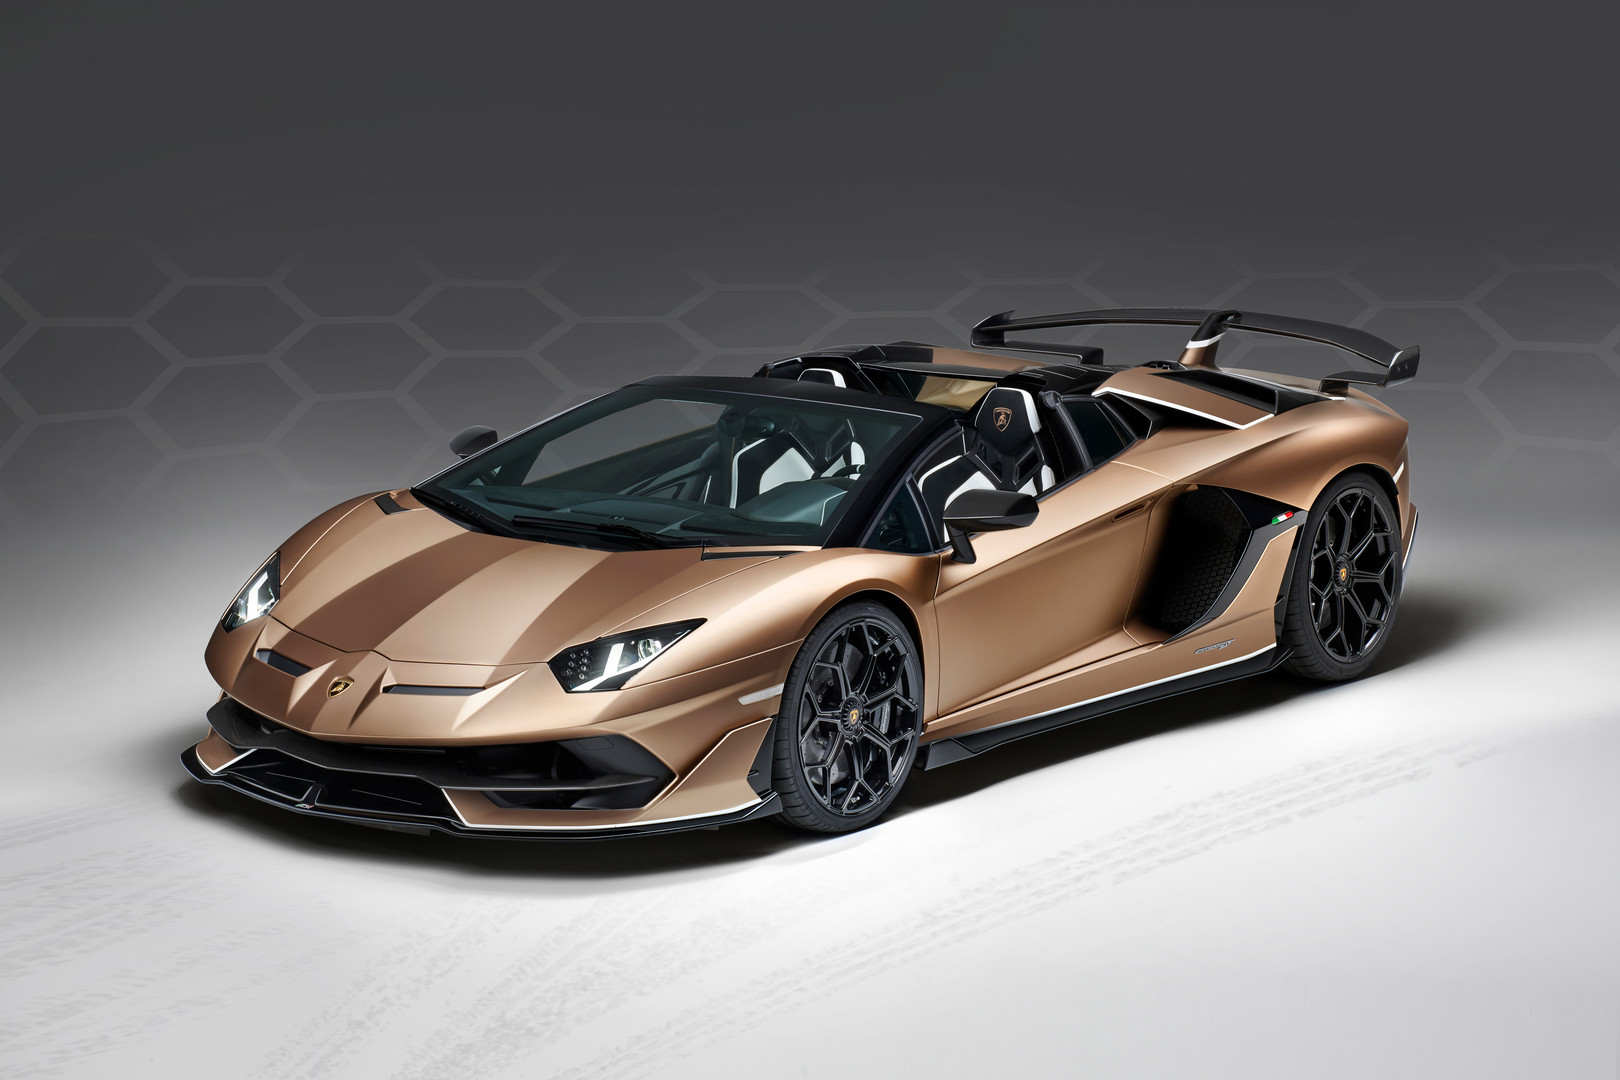 Lamborghini Aventador Svj Roadster Revealed 800 Units Only Gtspirit